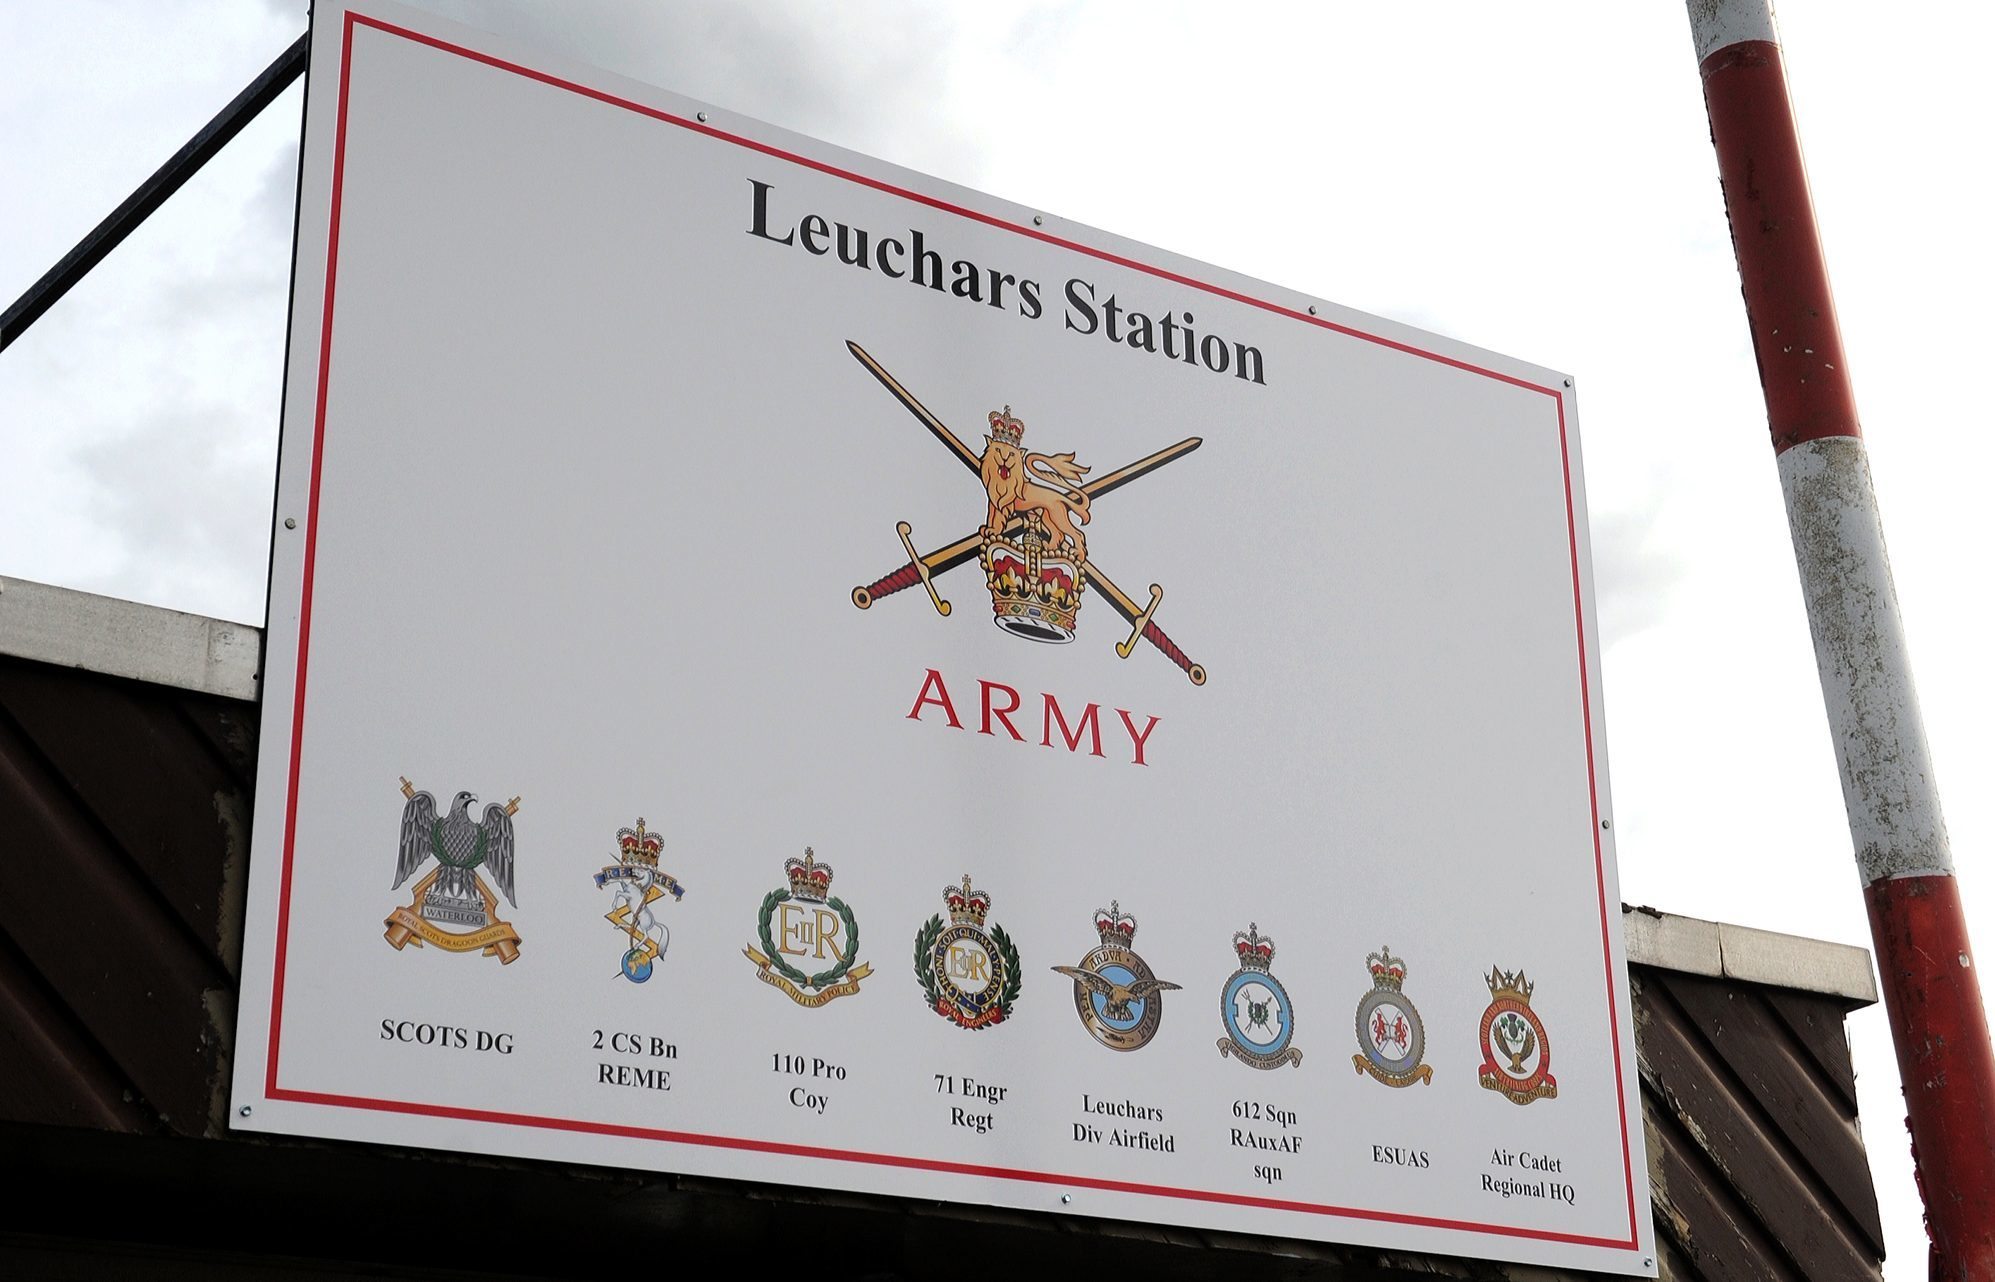 Leuchars Station.